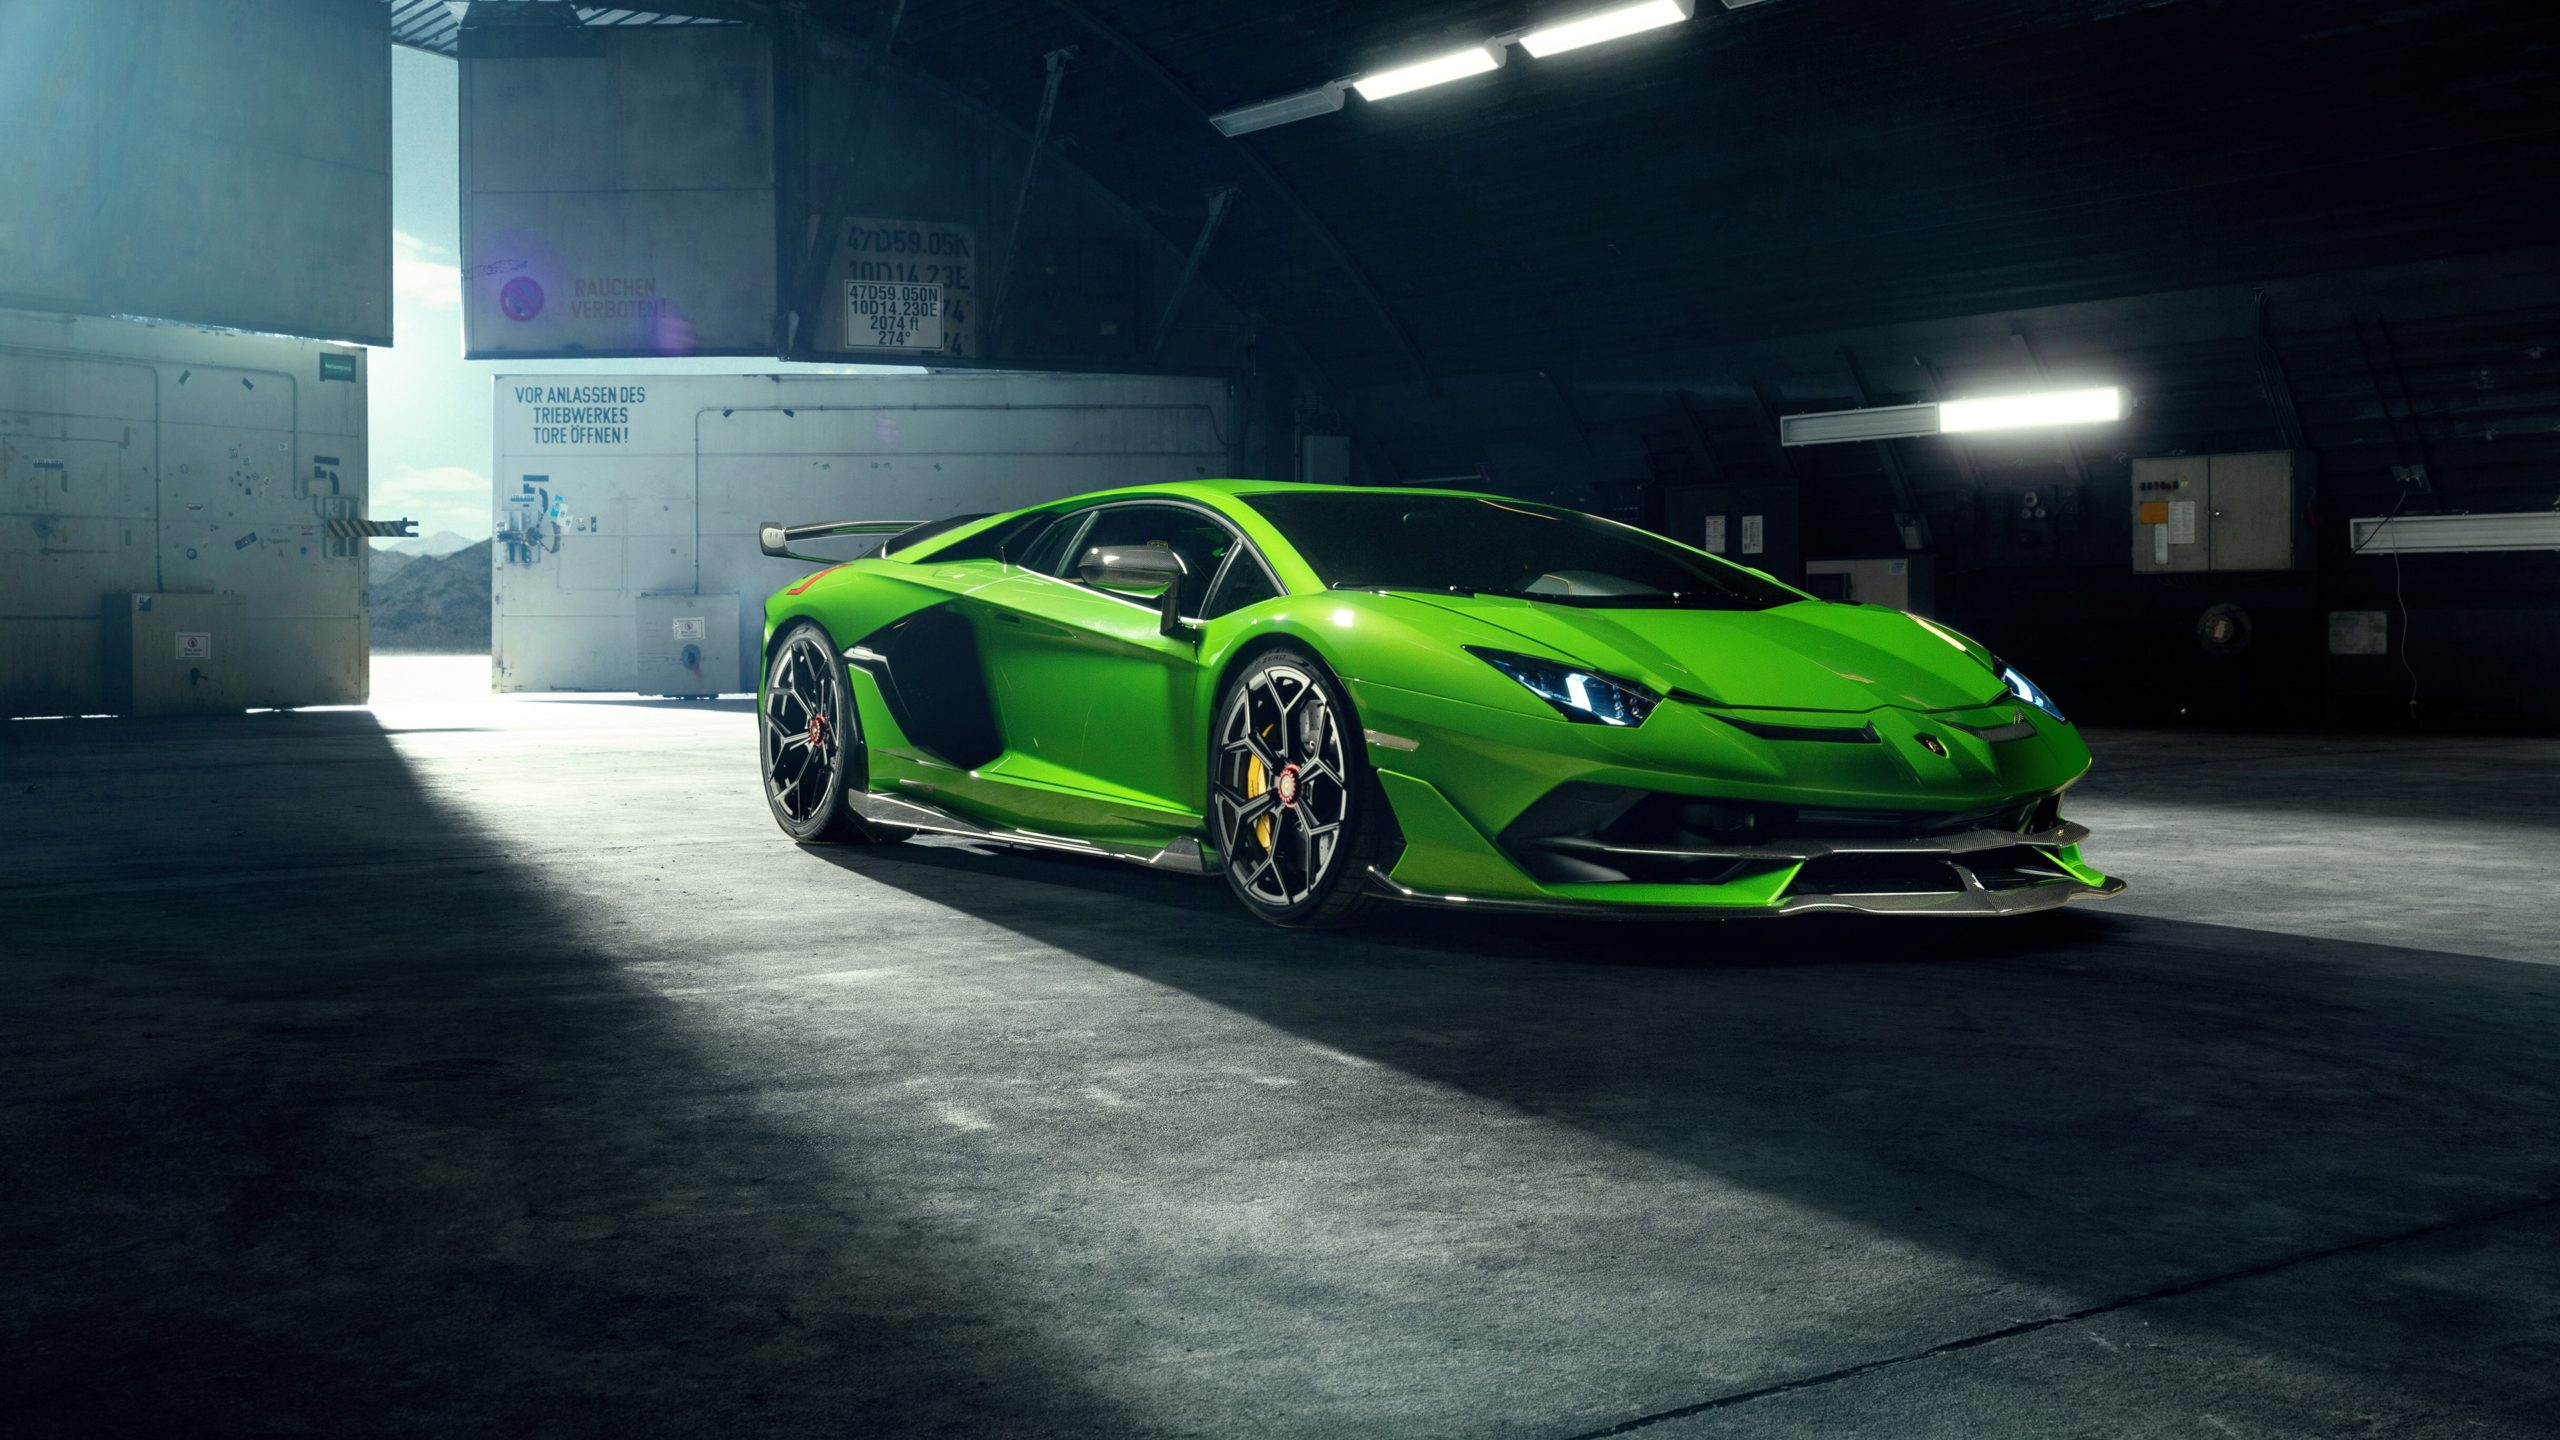 Lamborghini Aventador 2020 Car Wallpaper 3840x2160